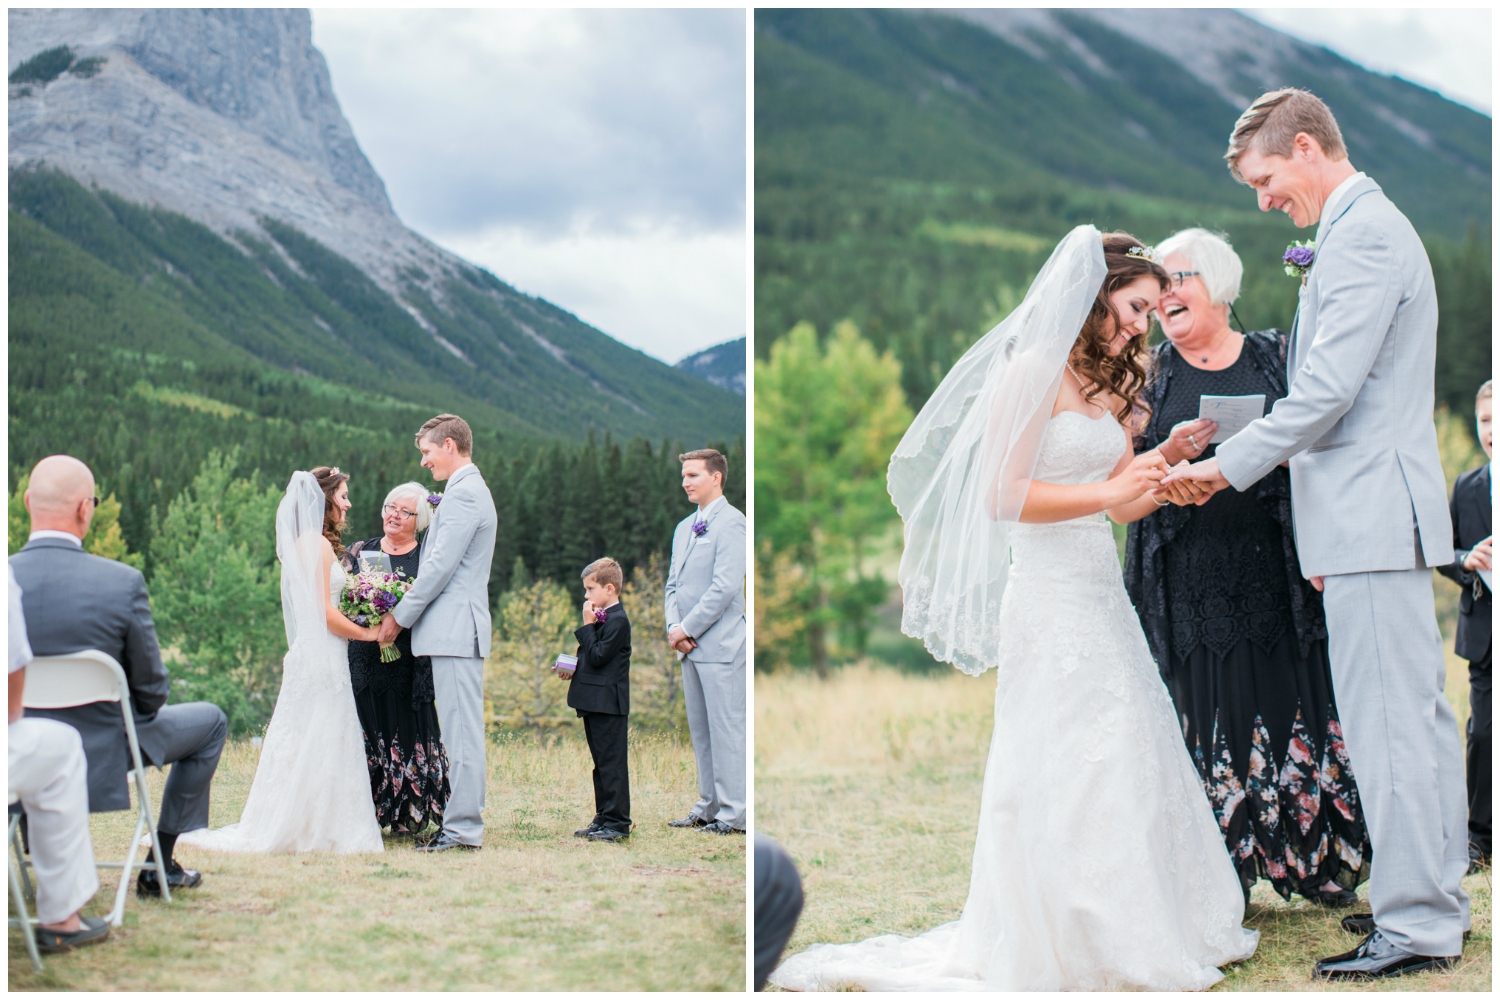 Canmore Wedding Photographer Quarry Lake Park Canmore Nordic Centre - 23